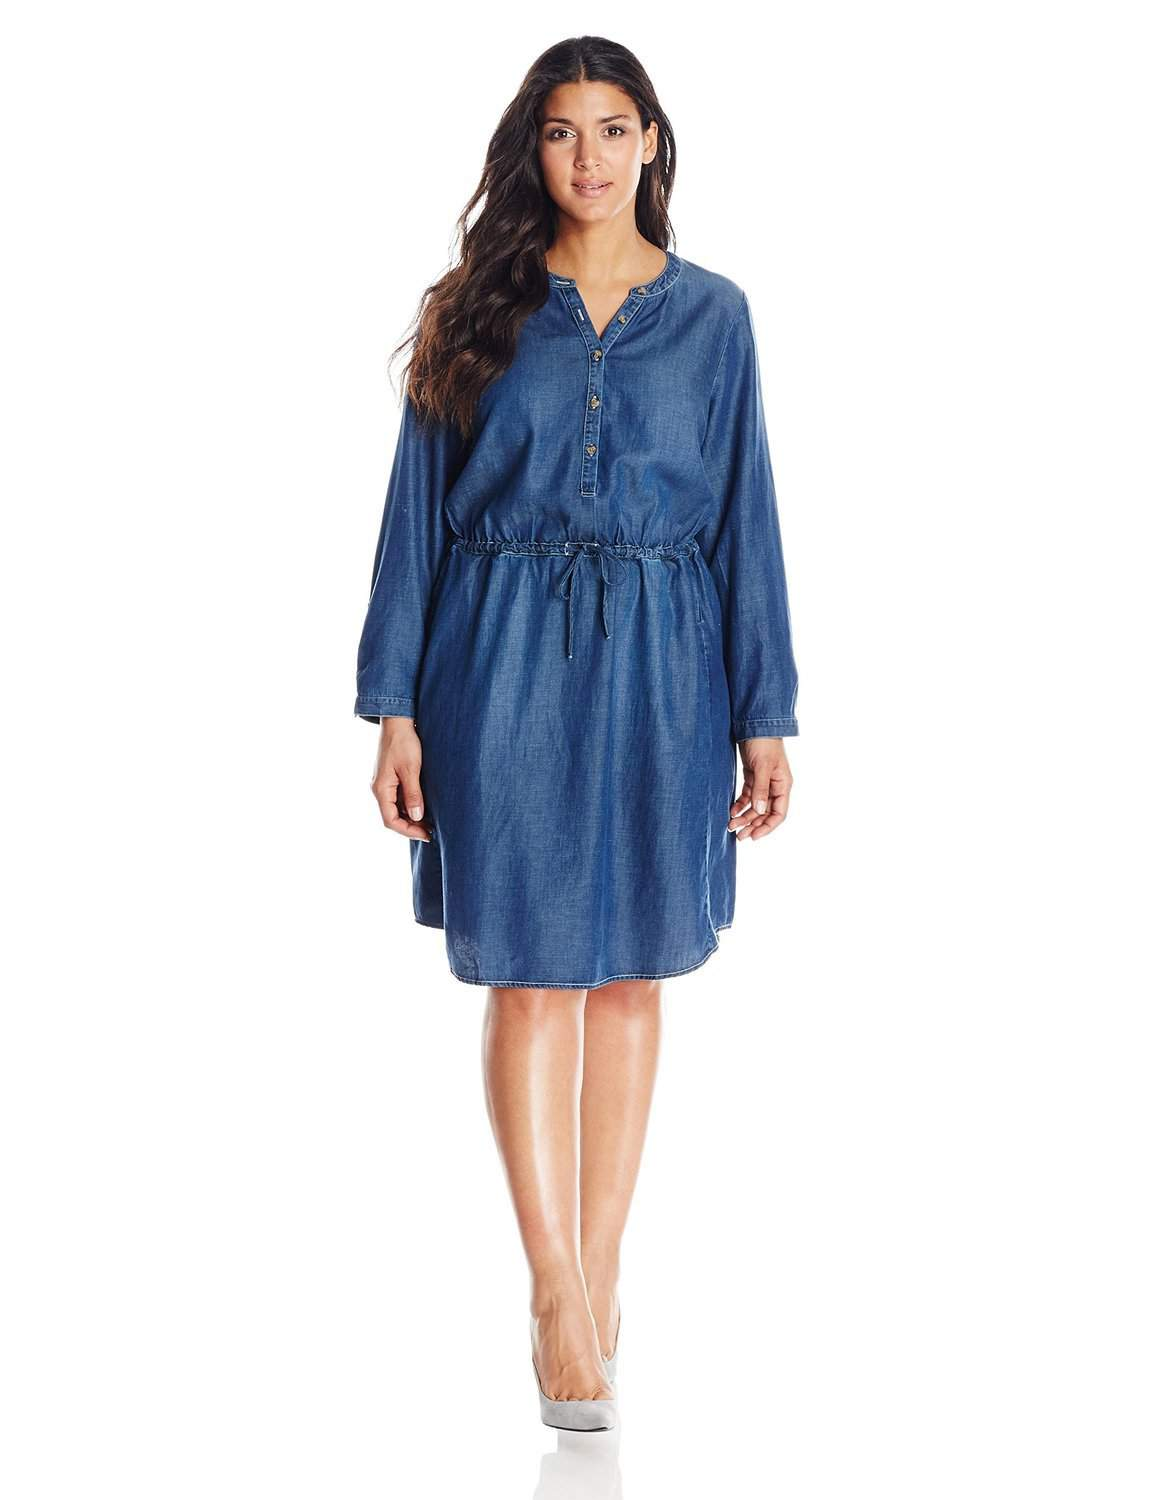 The Plus Size Denim Dress and 10 Picks for You On TheCurvyFashionista.com